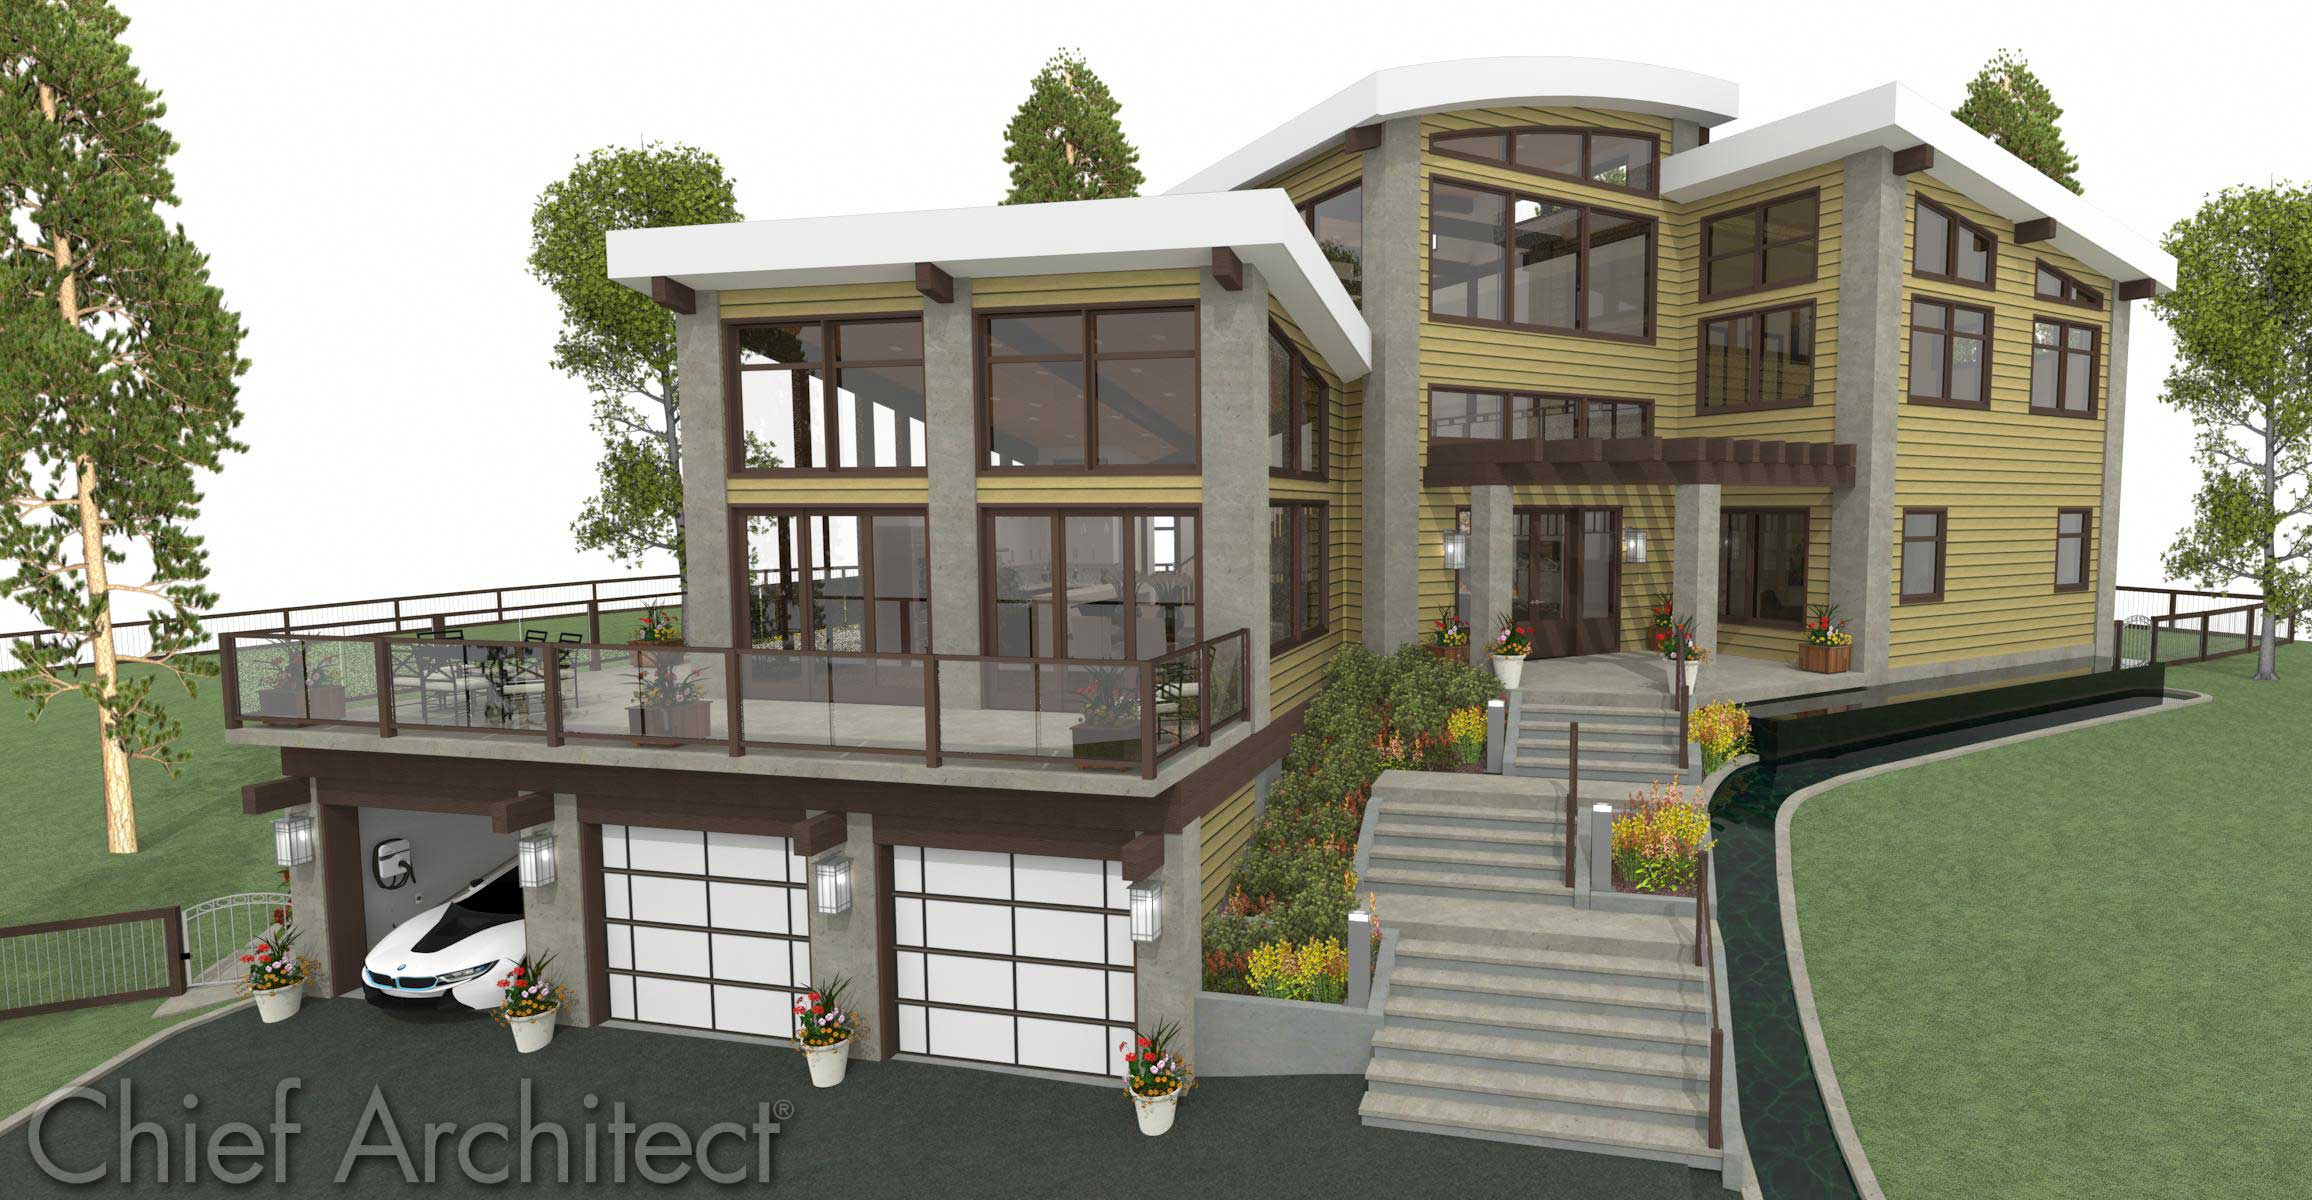 Chief Architect Templates Lft Chr 06 Instantly Downloadable And Editable Chief Architect Architectural Designer 2012 Pc Amazon Co Uk Search Online For Traditional 4 Bedroom House Plans And You Ll See Chief